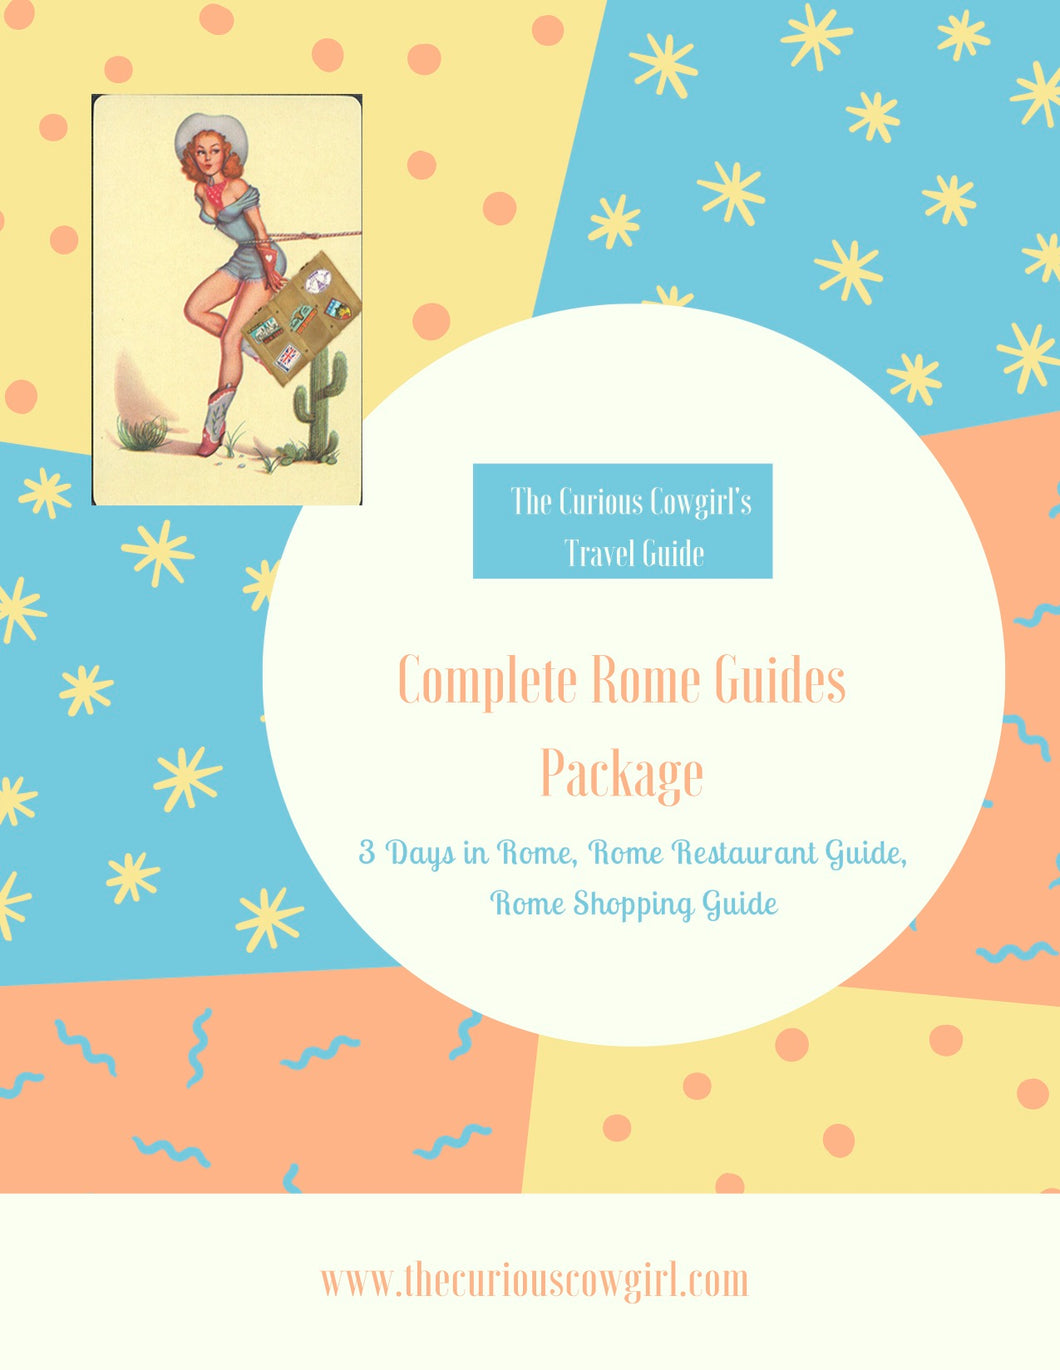 Complete Rome Guides Package